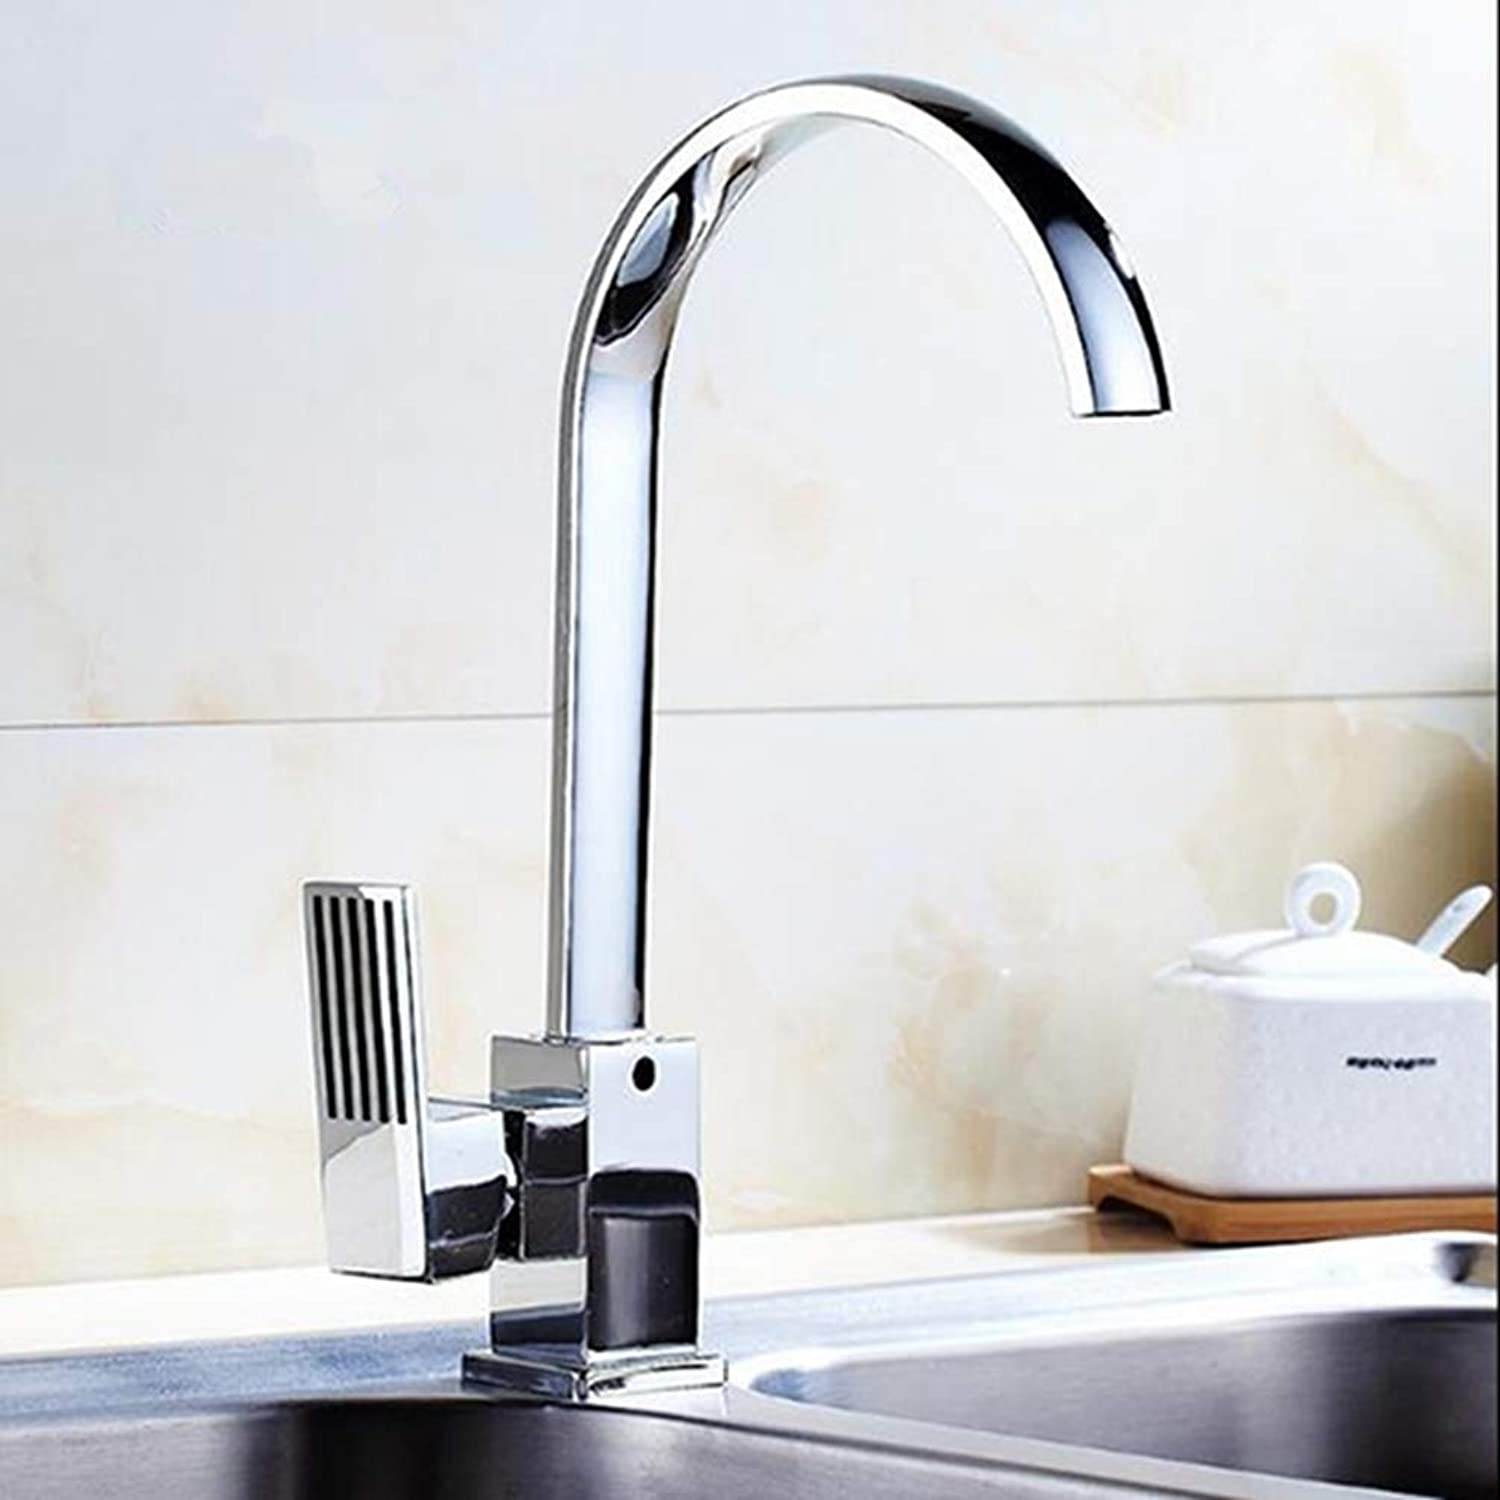 FZHLR Kitchen Faucet Hot and Cold Water Mixer Wash Basin Basin Dual Use Pure Copper Body Basin Faucet 360 Degree Swivel Kitchen Sink Tap Chrome